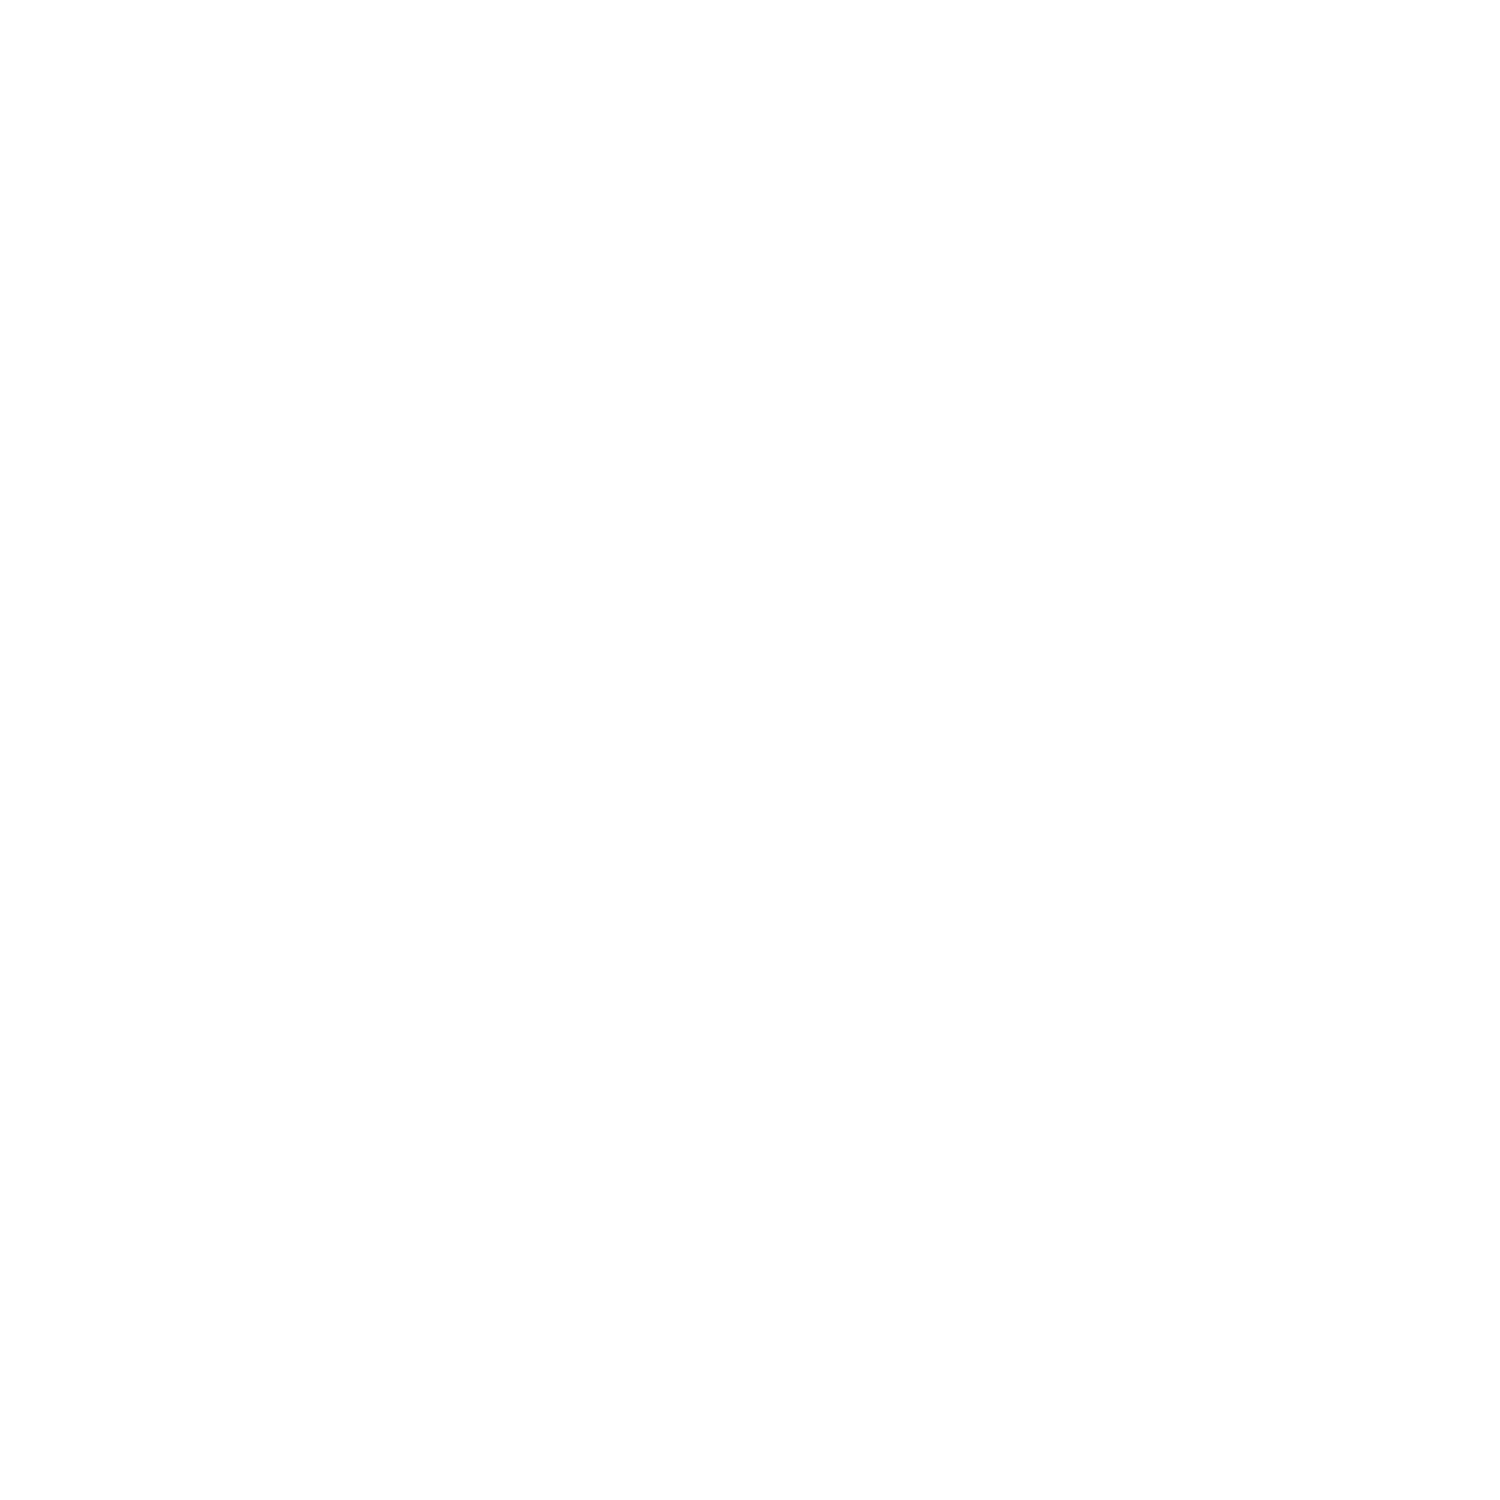 Calgary craft connection